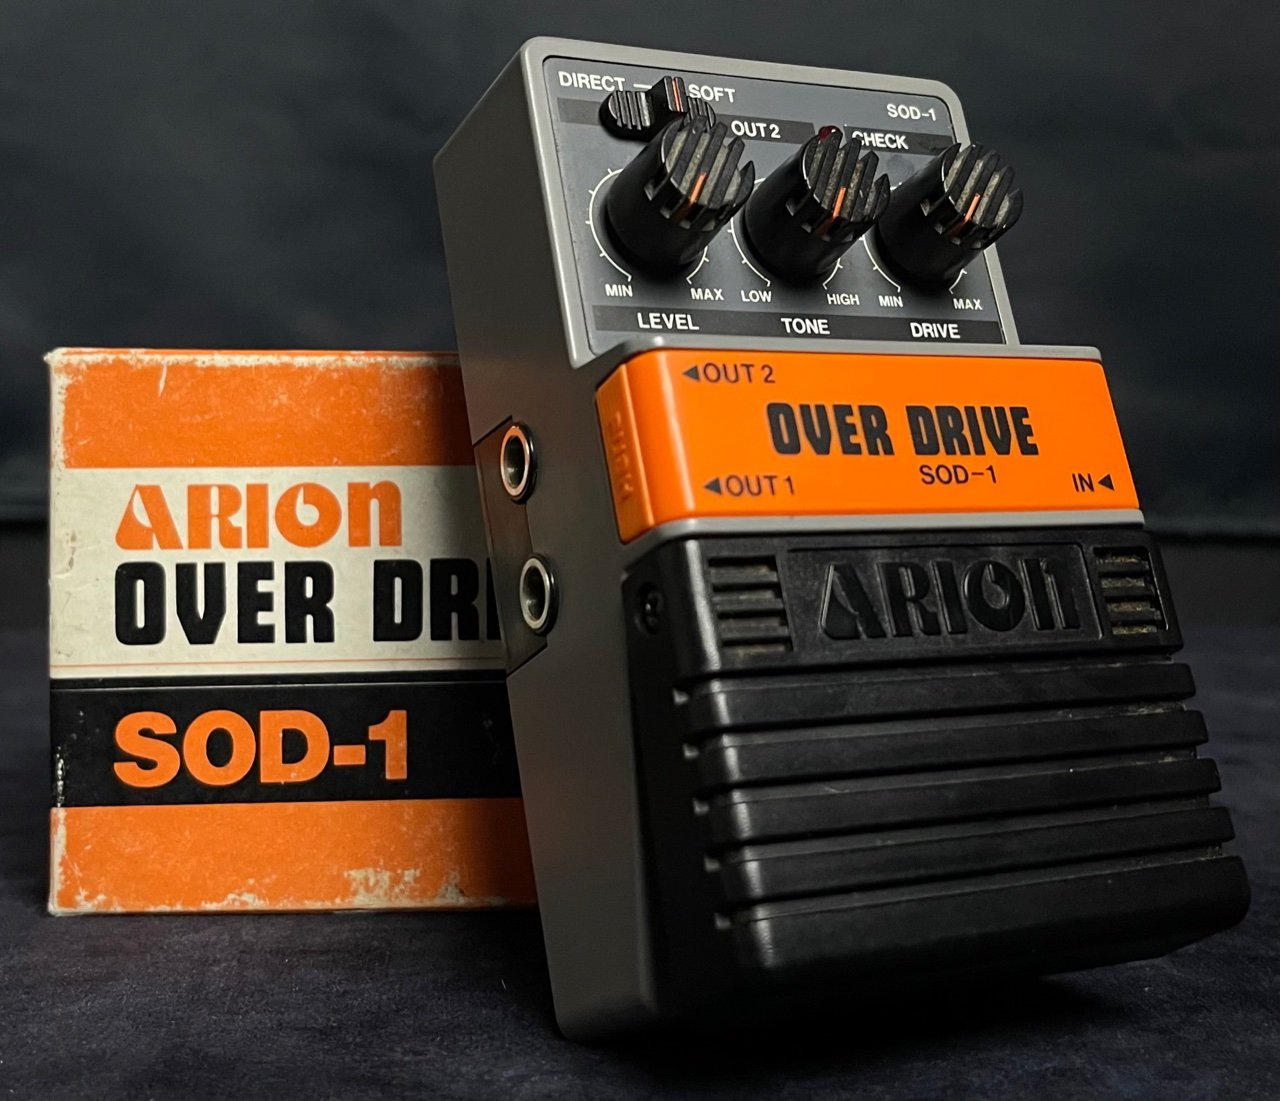 Arion SOD-1 Over Drive  - Overdrive Pedal V1 Gray Box w/box & Manual